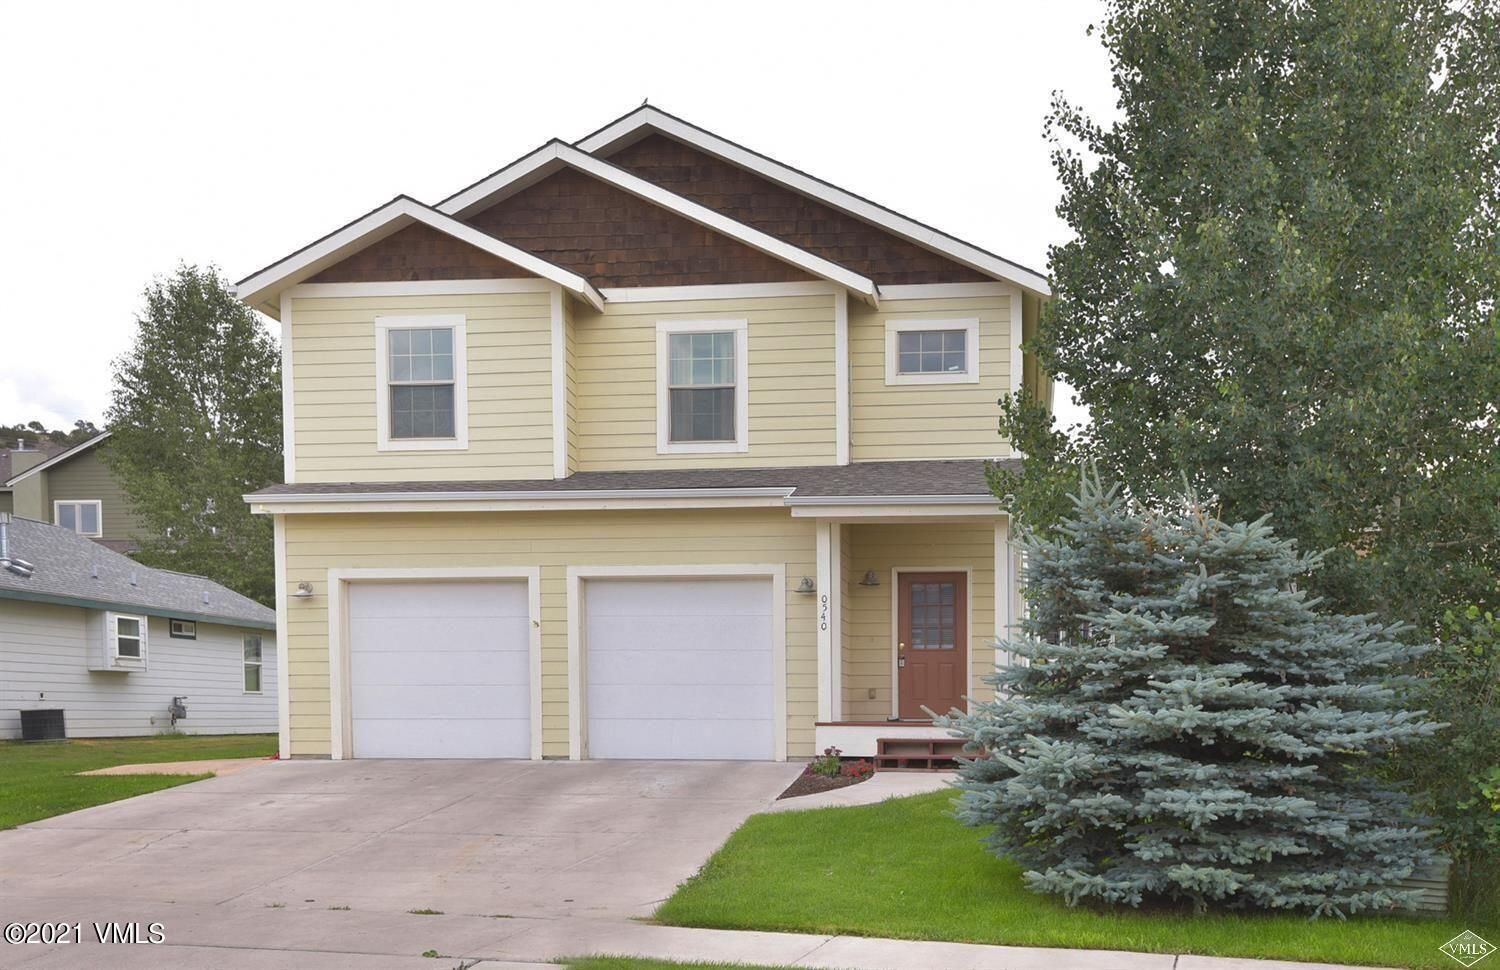 This single family residence has it all. Updated, fresh and clean with outstanding beautifully flowing floor plan. Superior covered back deck is a must see and the lower level in-law apartment offers a fantastic supplementation of carry cost. Spacious bedrooms, outstanding neighborhood, world class mountain bike trails right out your front door. This residence is close to everything Eagle has to offer makes this home a perfect long term investment.